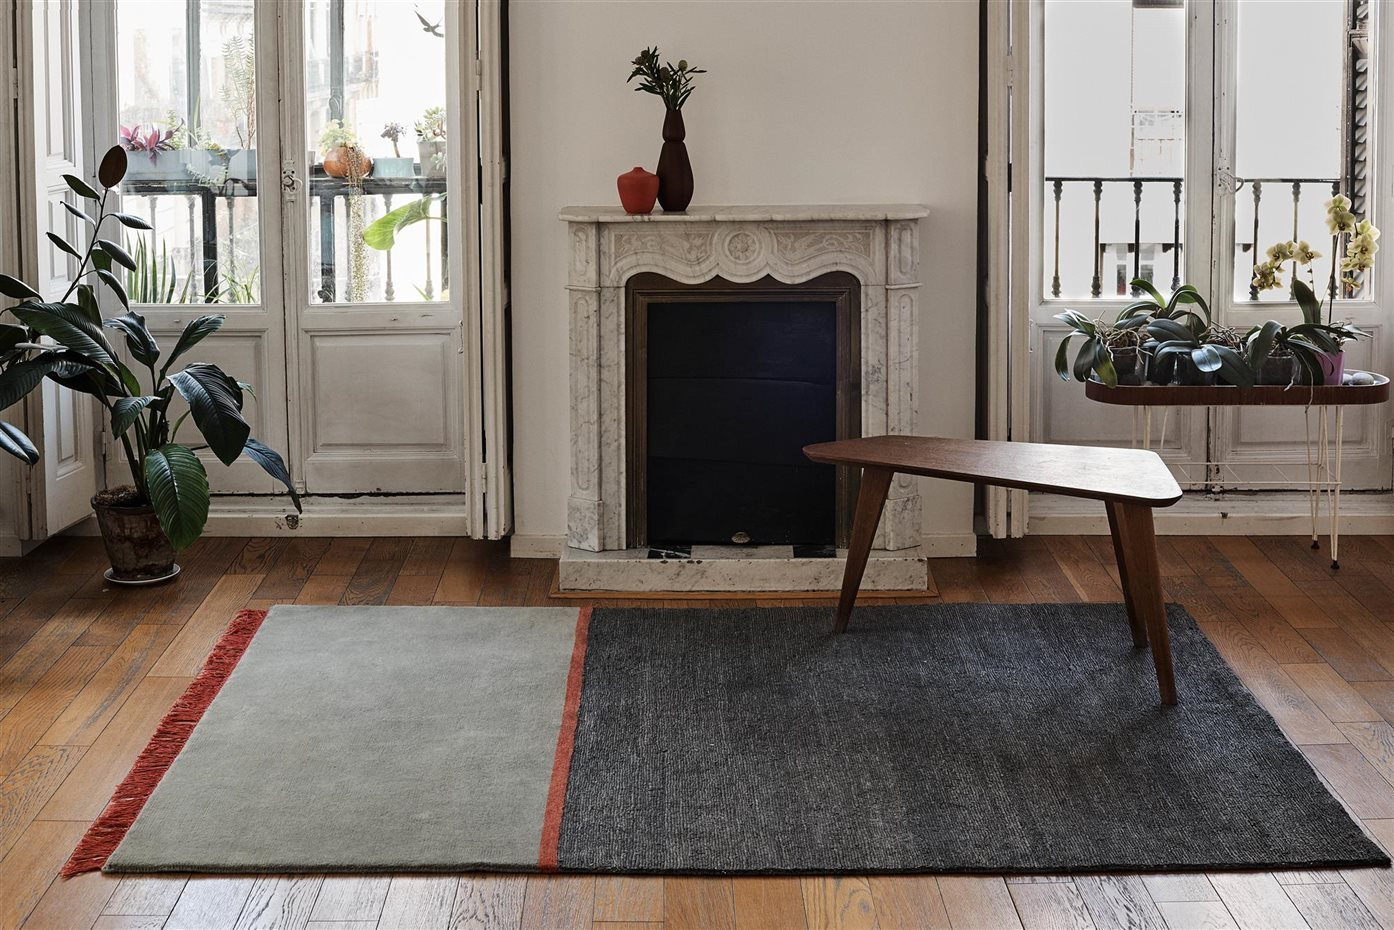 Helena Rohner for DAC RUGS copyright Anton Goiri (1).